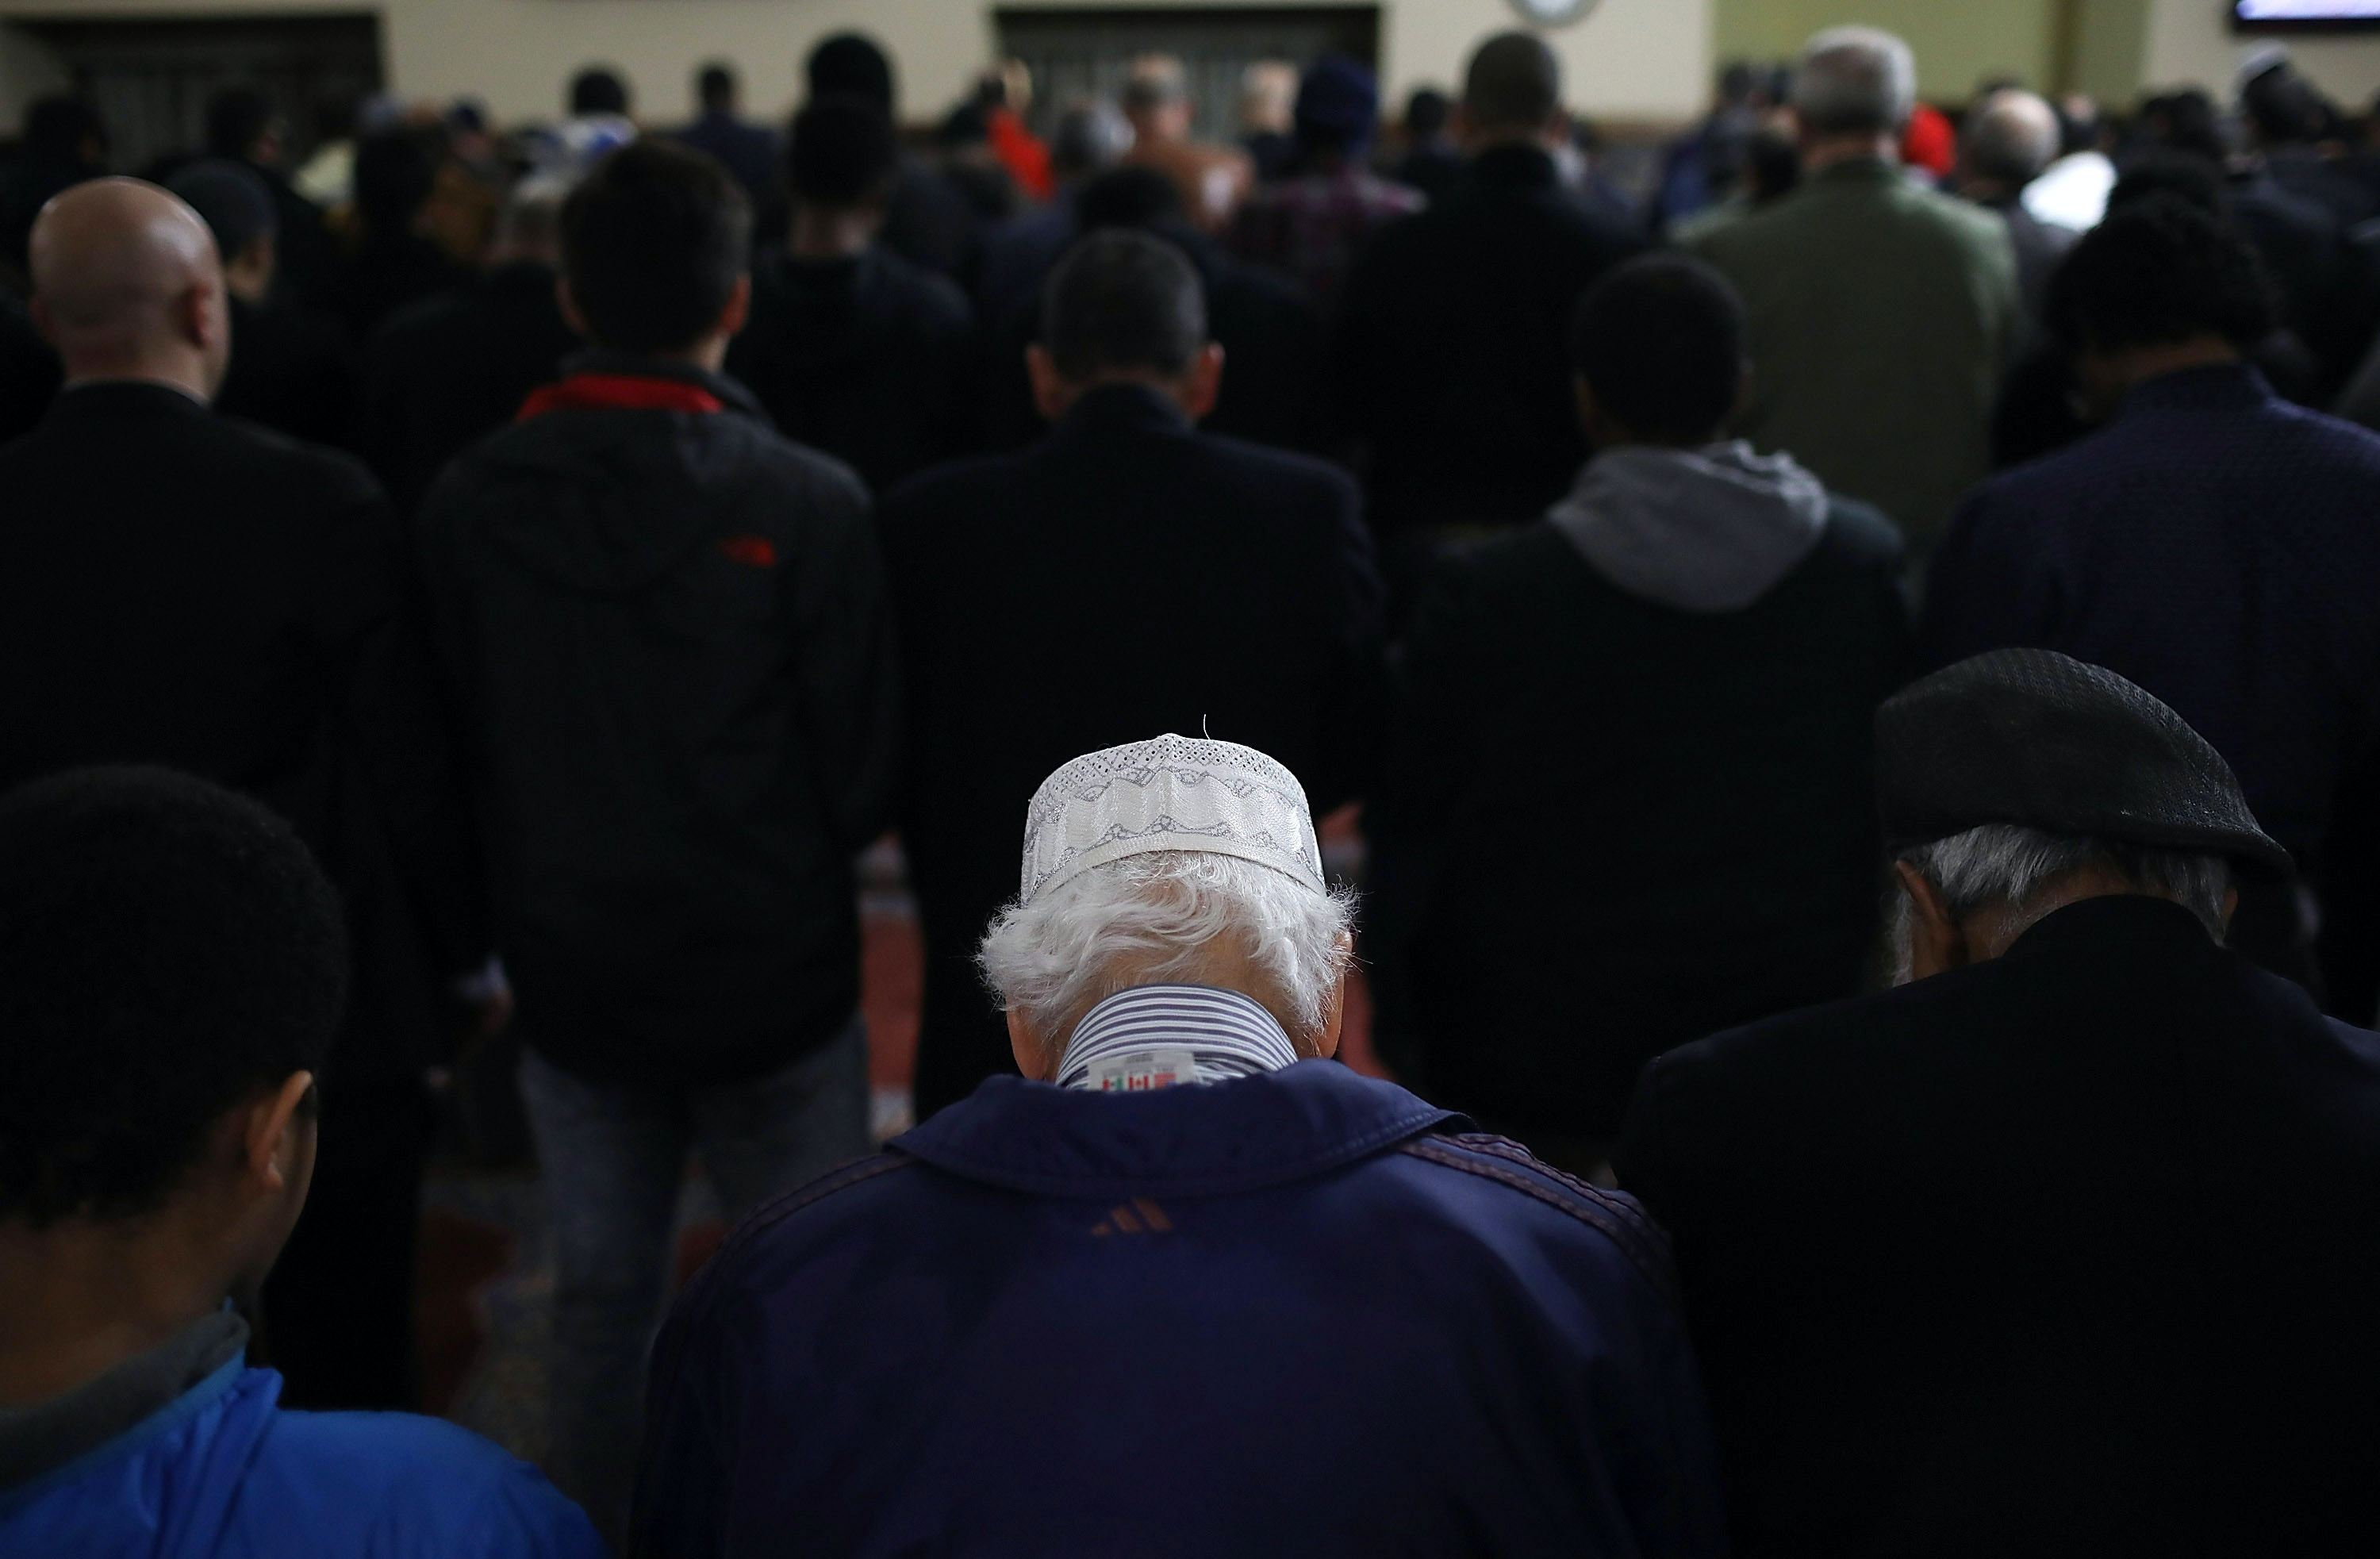 "FALLS CHURCH, VA - MARCH 17:  Members of the Dar Al-Hijrah Islamic Center mosque pray prior to a town hall meeting with Virginia Attorney General Mark Herring March 17, 2017 in Falls Church, Virginia. The town hall, sponsored by the Council on American-Islamic Relations, was held following U.S. President Donald Trump's executive order limiting immigration from 6 predominantly Muslim nations and also included a free free ""Citizenship Application Clinic.""  (Photo by Win McNamee/Getty Images)"